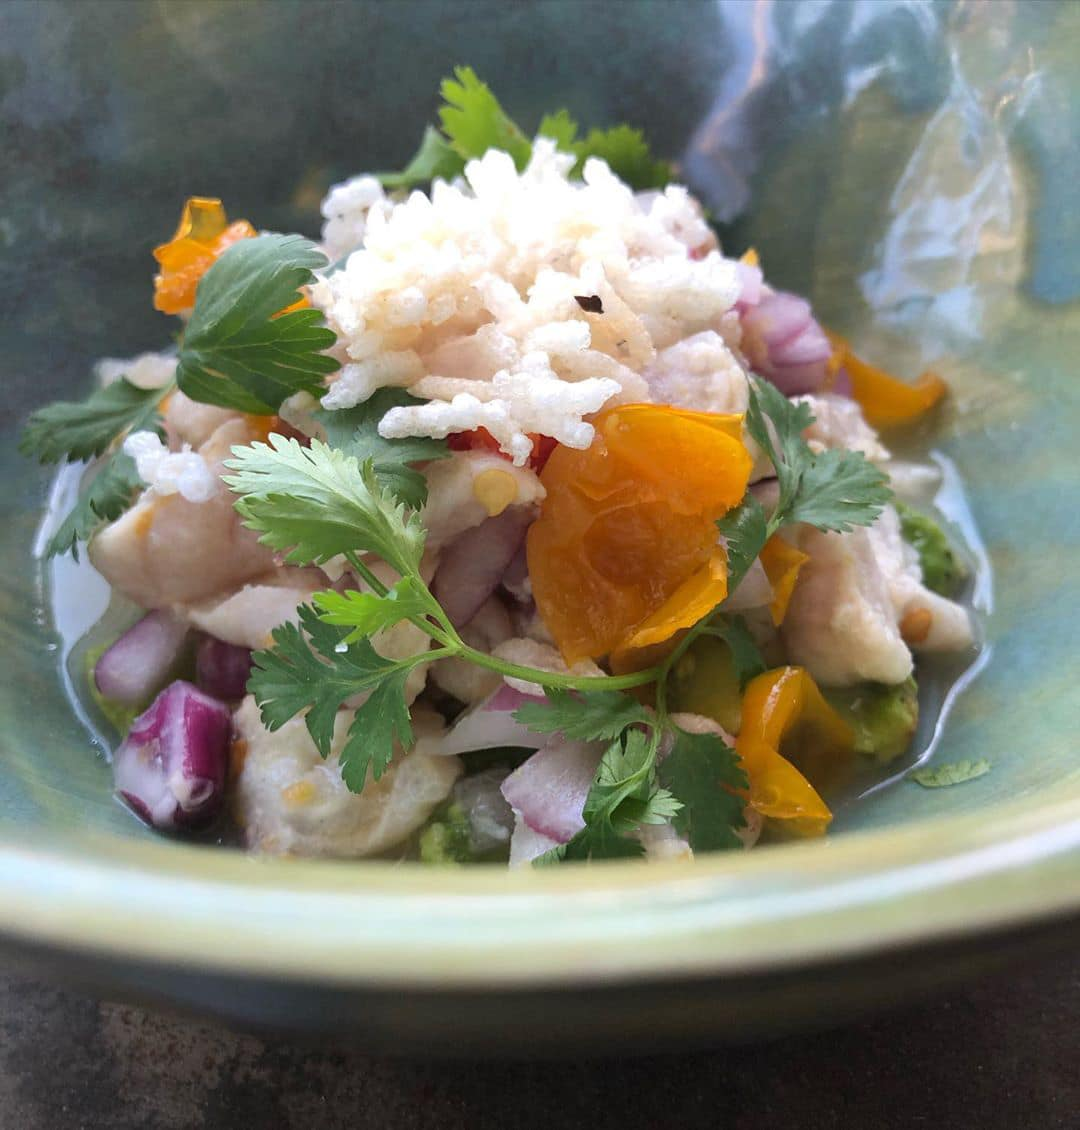 Rockfish ceviche piled high topped with rice.